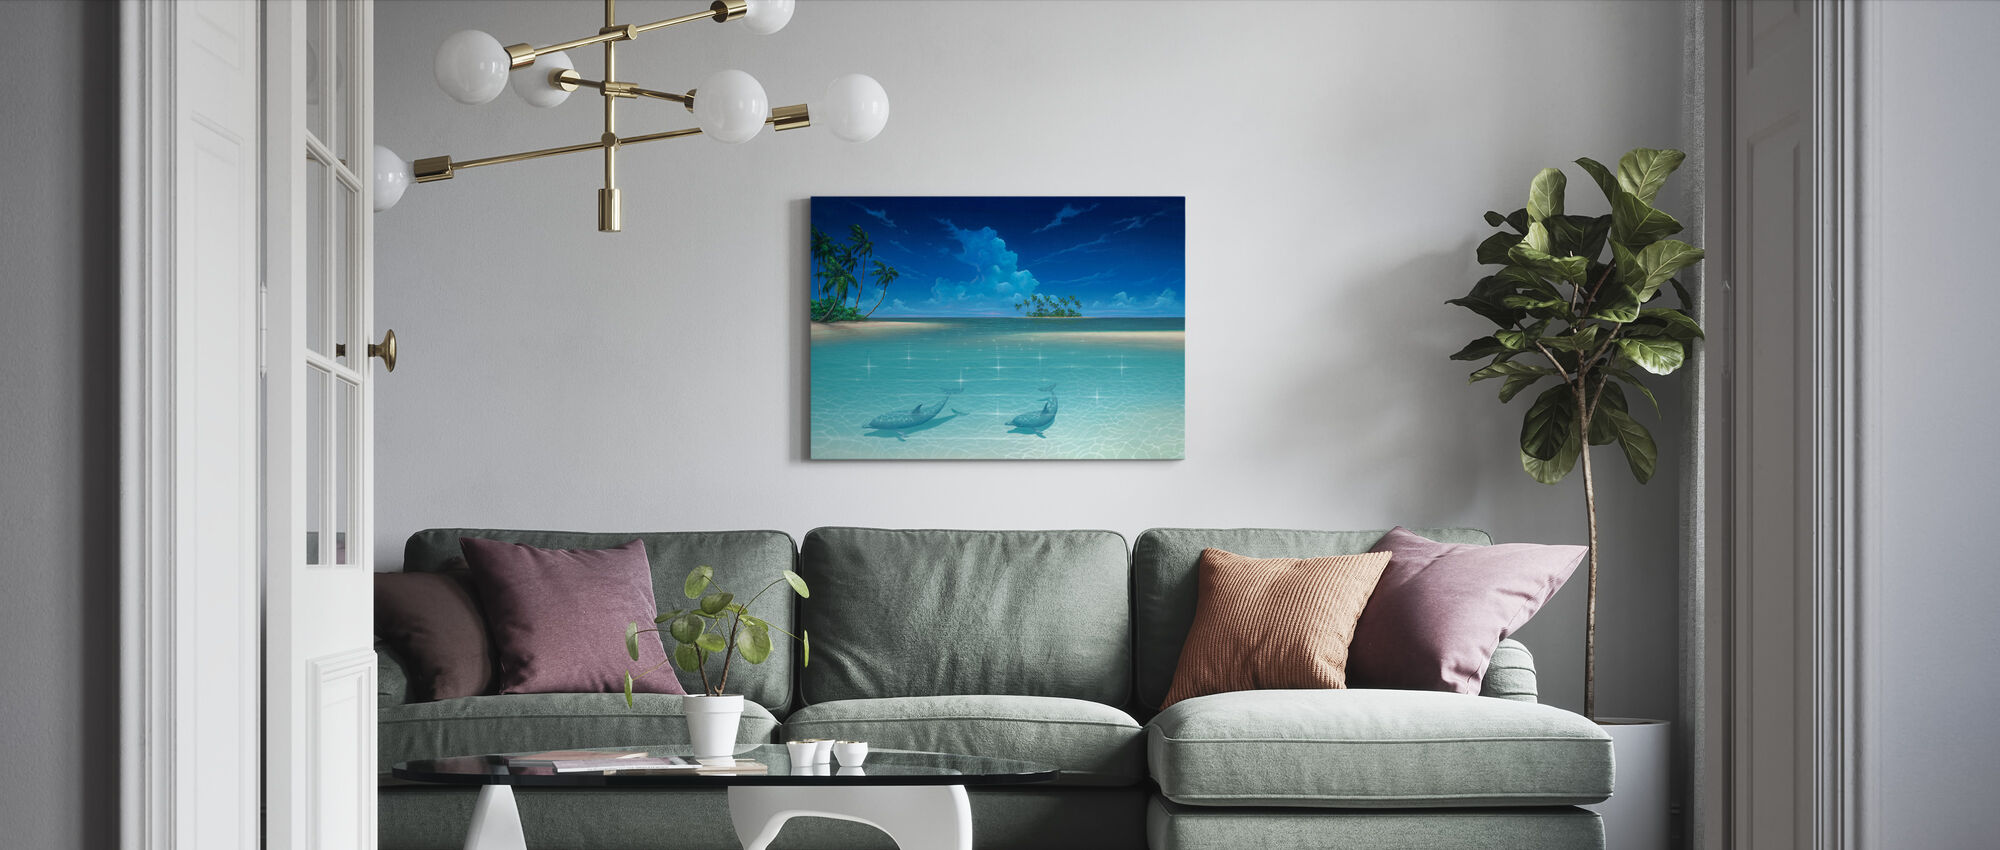 Dolphin Cove - Canvas print - Living Room